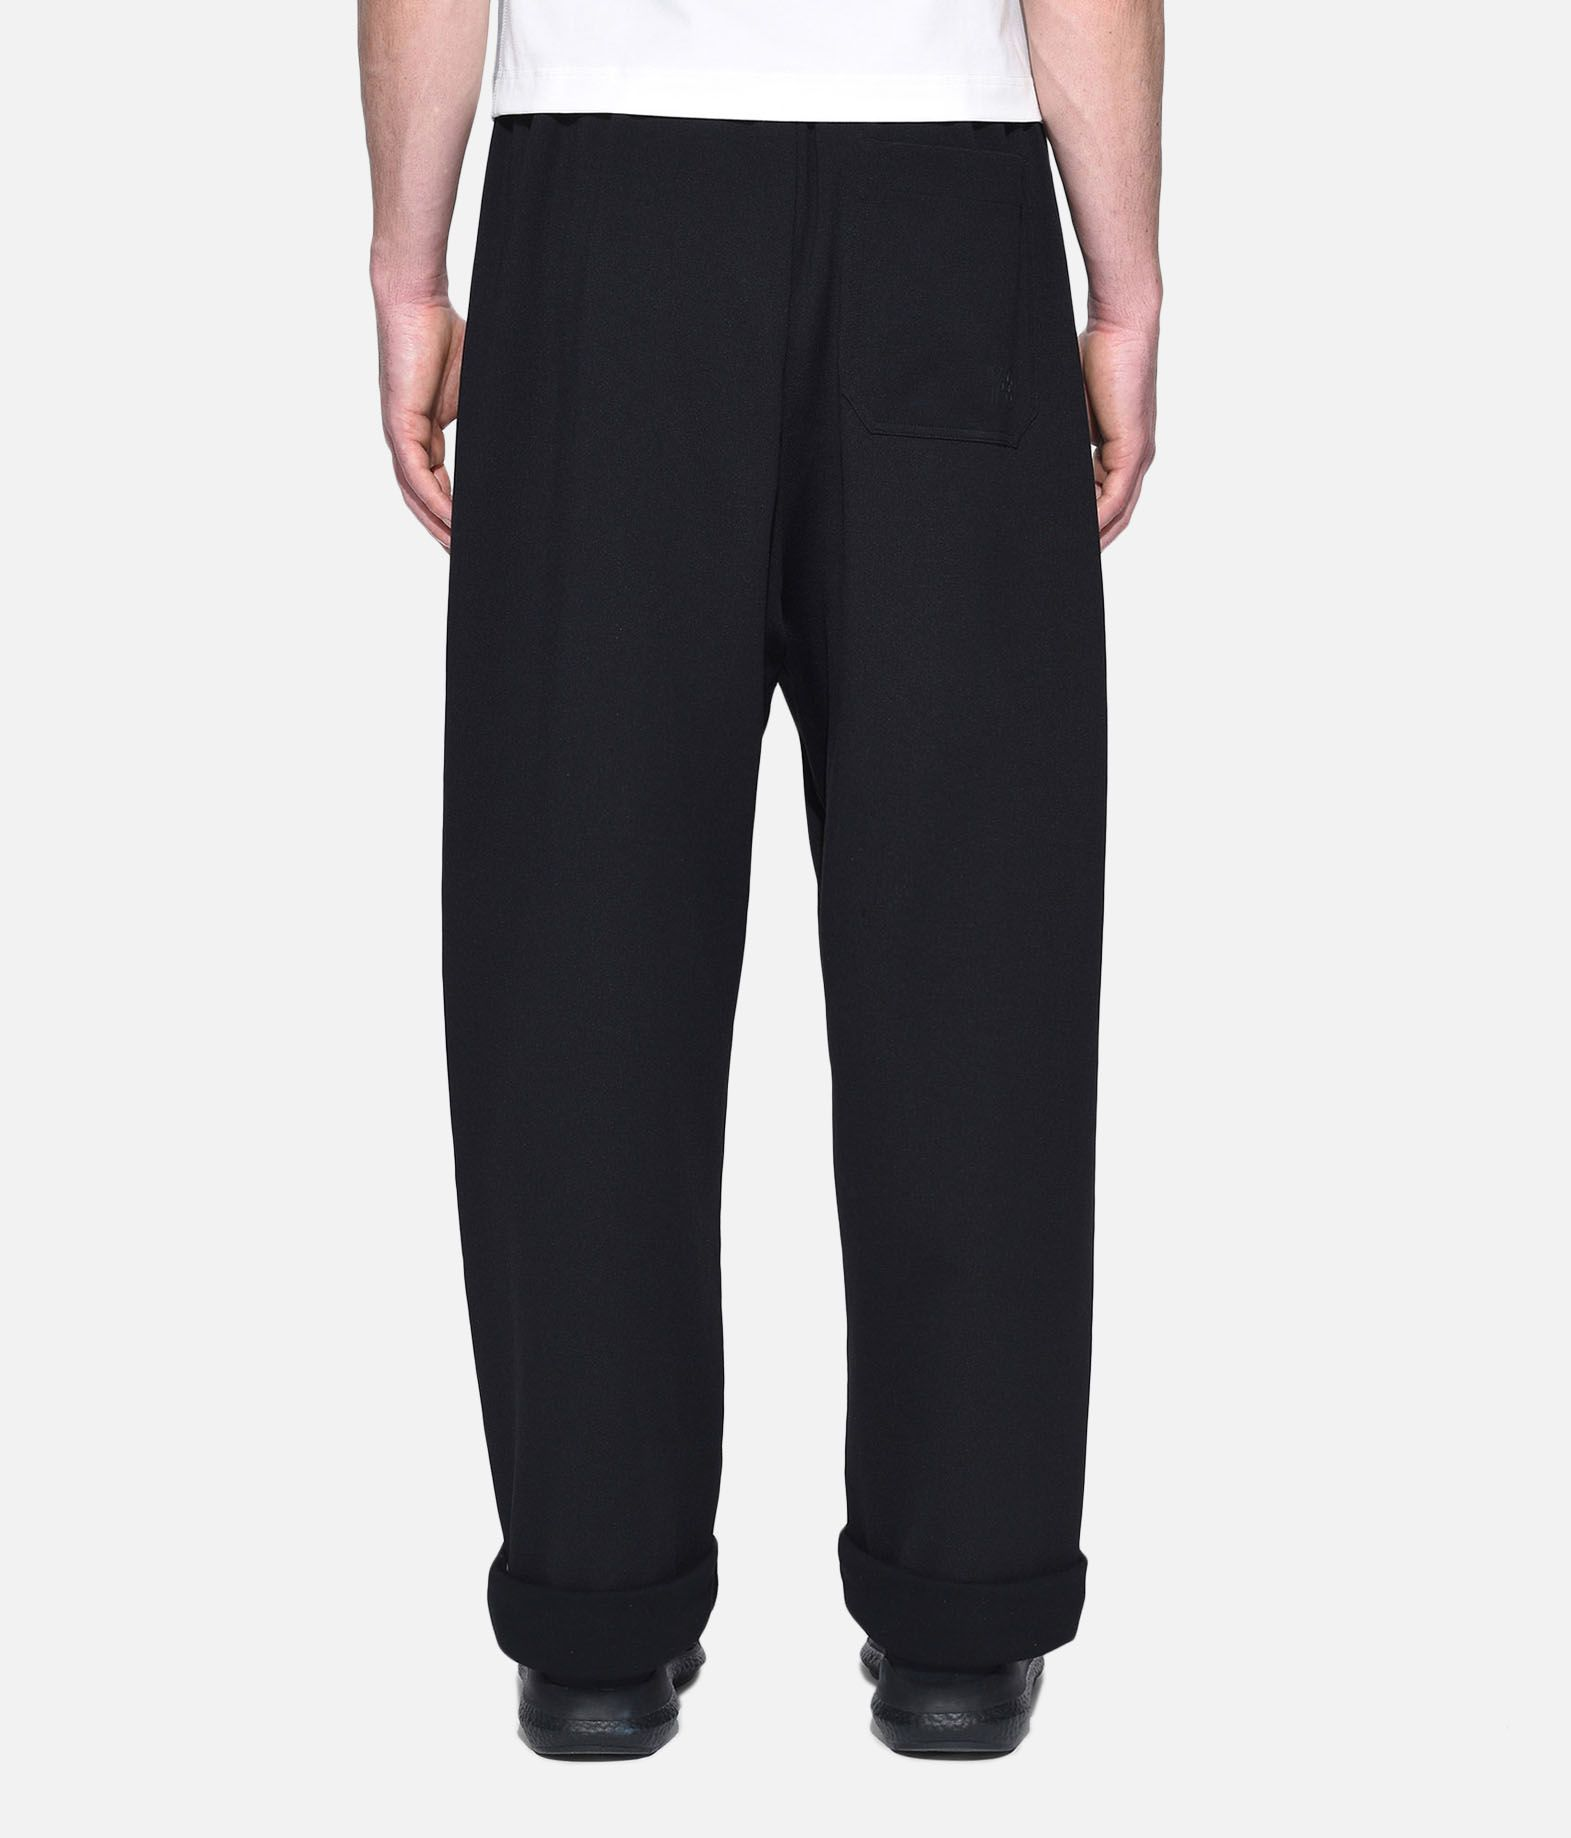 Y-3 Y-3 3-Stripes Selvedge Wide Pants Спортивные штаны Для Мужчин d